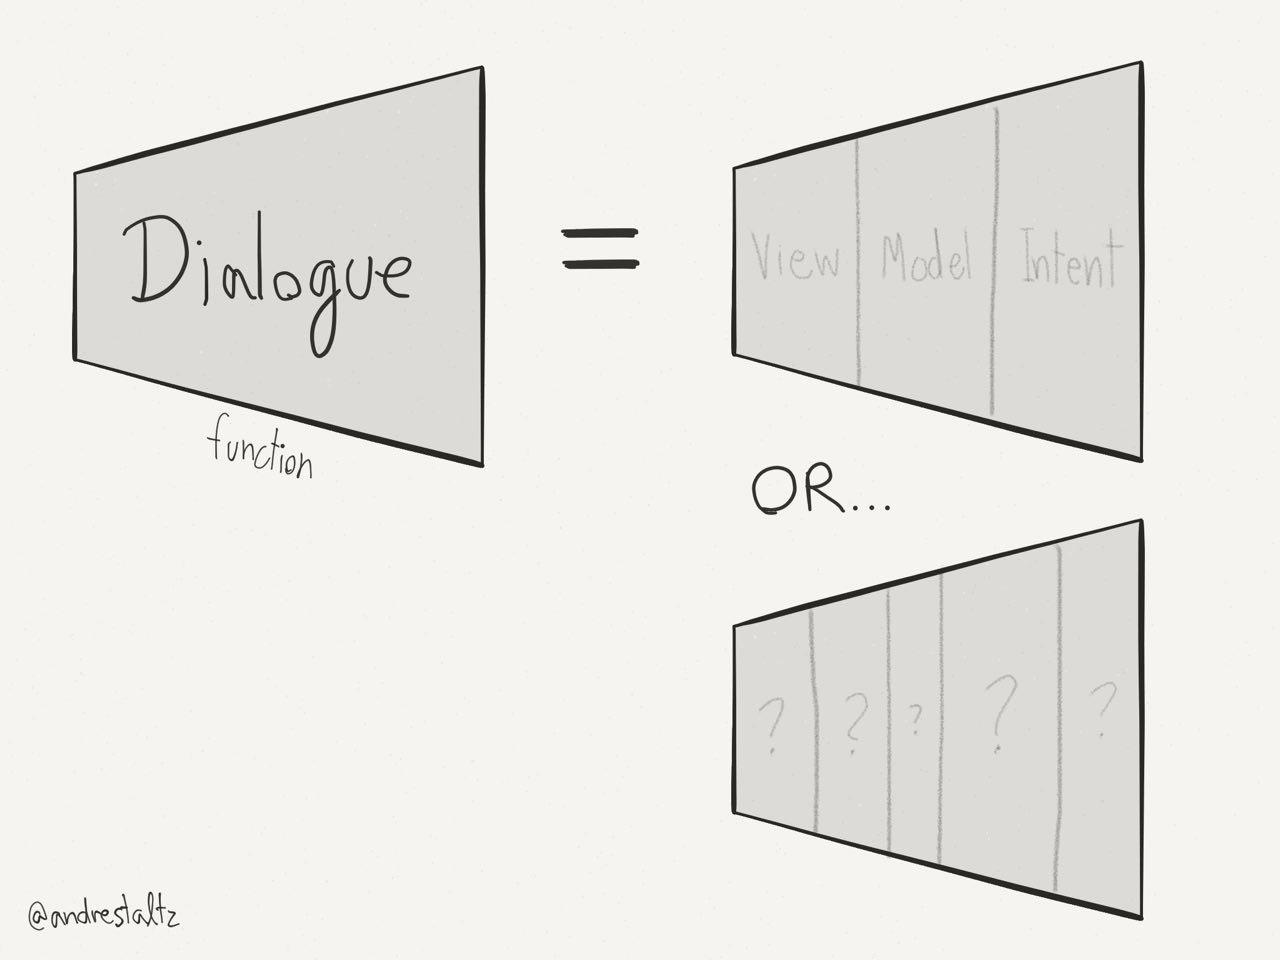 A Dialogue function equivalent to Model-View-Intent